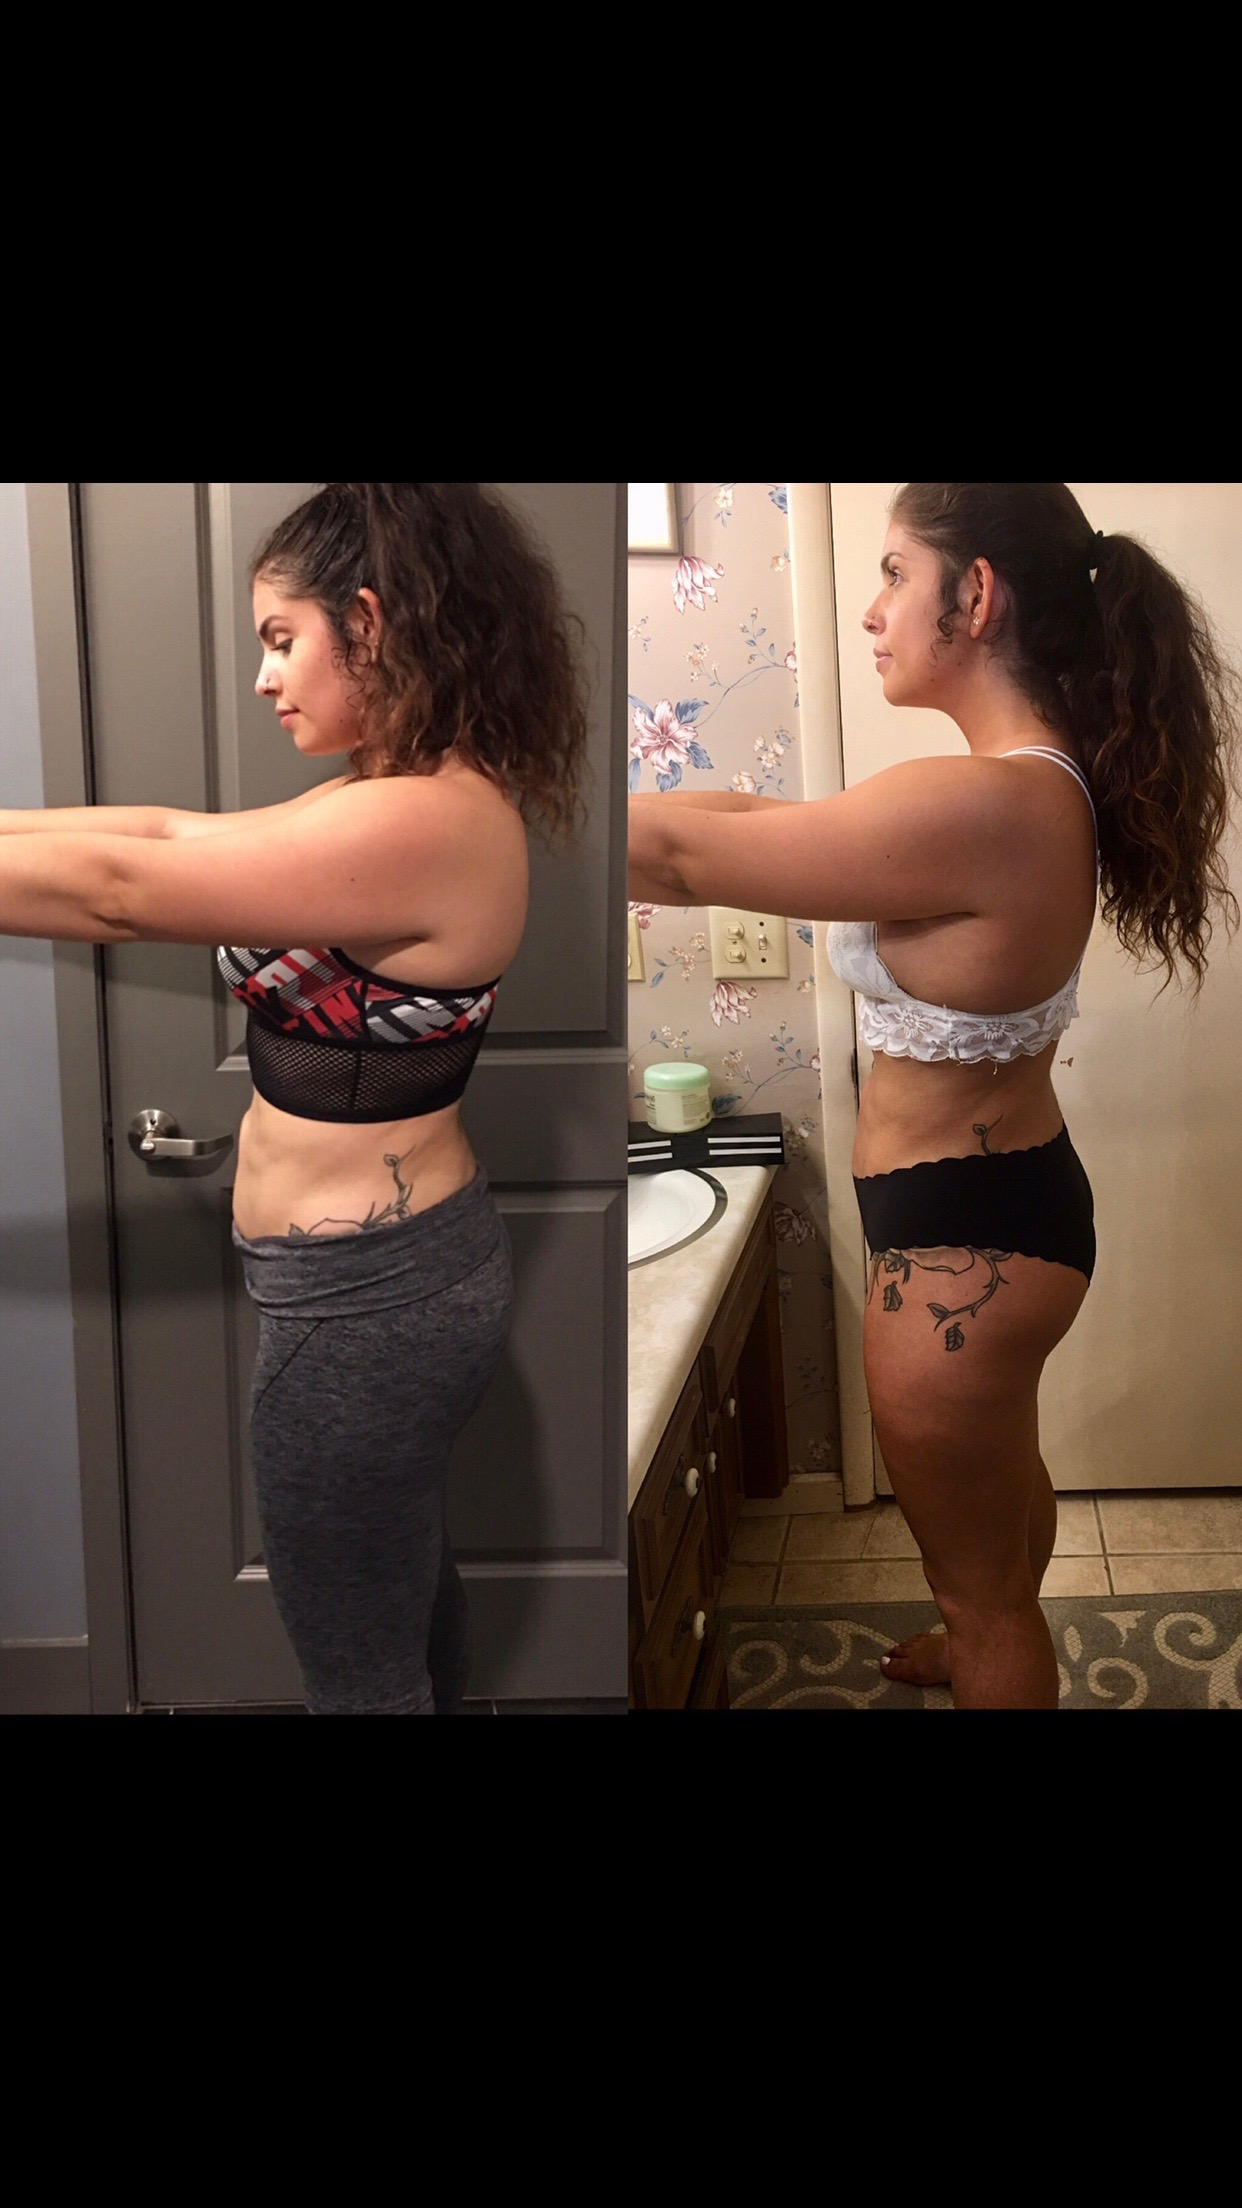 """- """"Being on Hannah's meal plans have been able to guide me in my weight loss journey. I am actually full and enjoy eating the meals she has picked out for me. The meals have kept me on track and really keep me from cheating and buying unnecessary unhealthy options! Hannah is a great supportive coach along your journey and also does monthly group workouts. If you're looking to get healthy Hannah's meal plans are the way to go!""""-LyANNE A."""